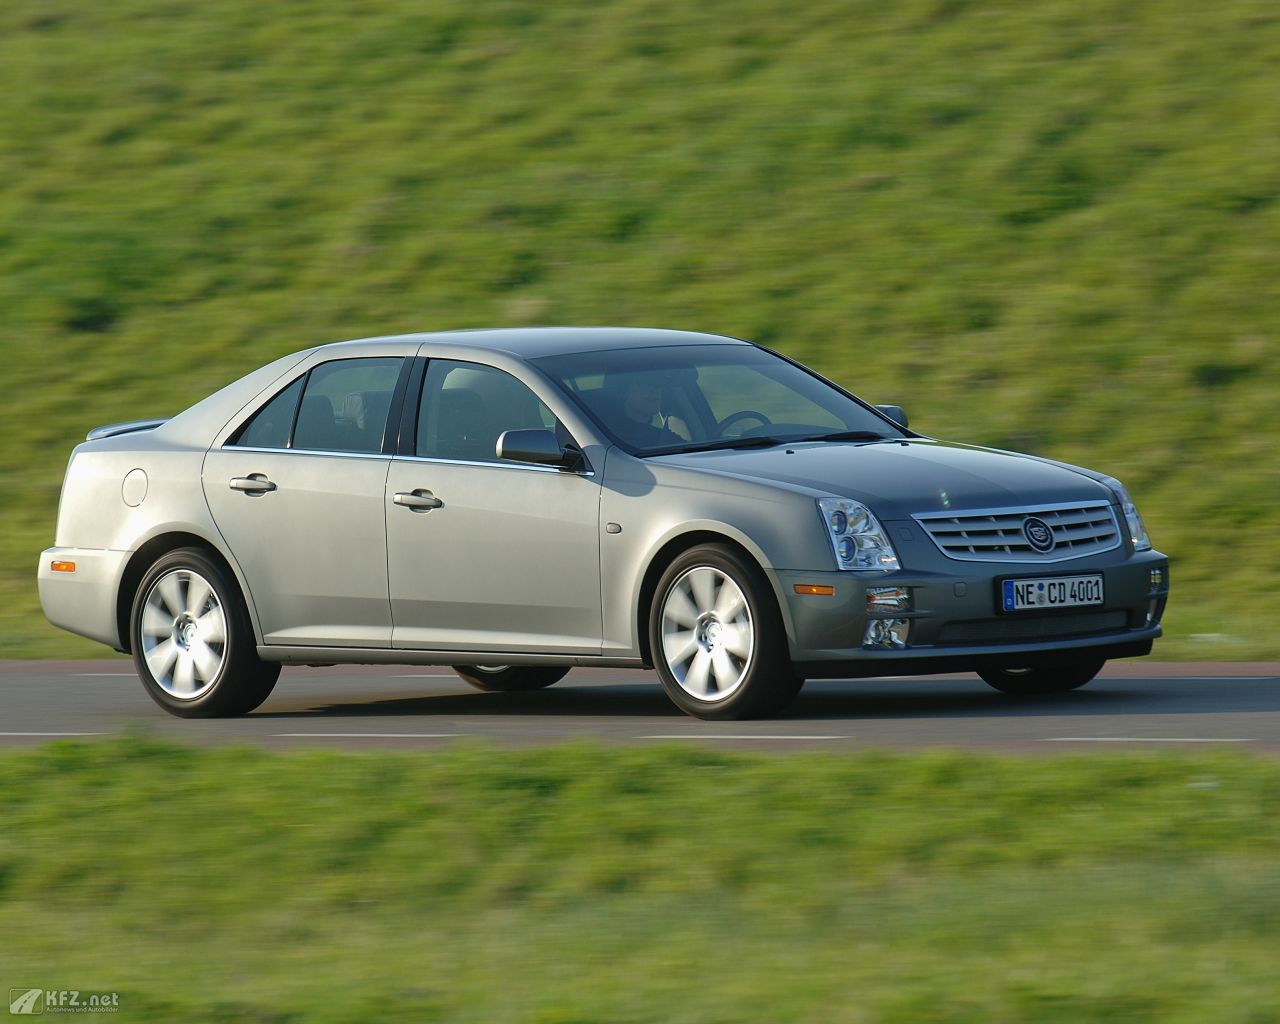 cadillac-sts-1280x1024-14